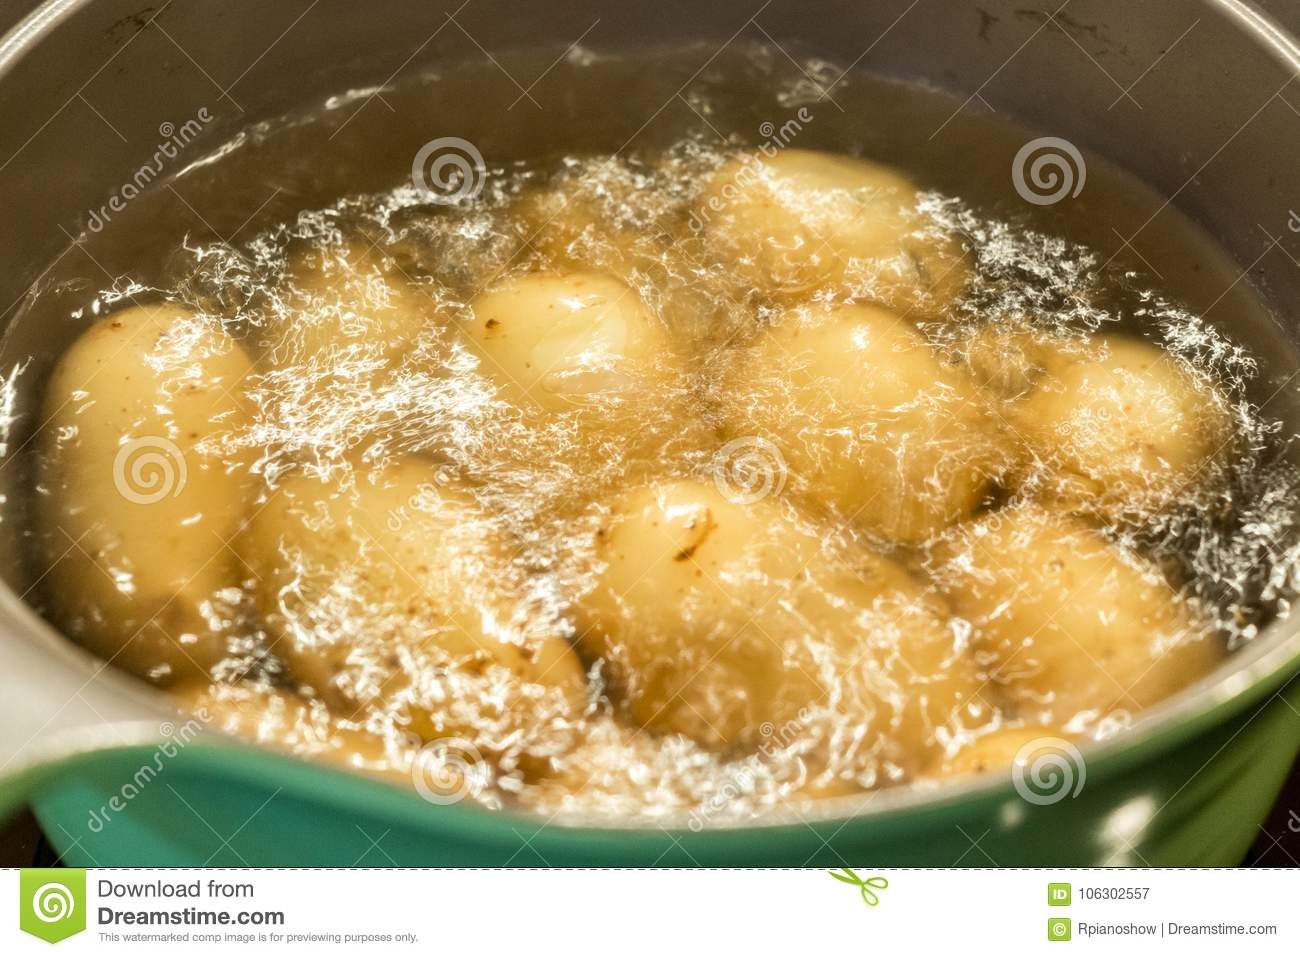 How to boil potatoes in a pan